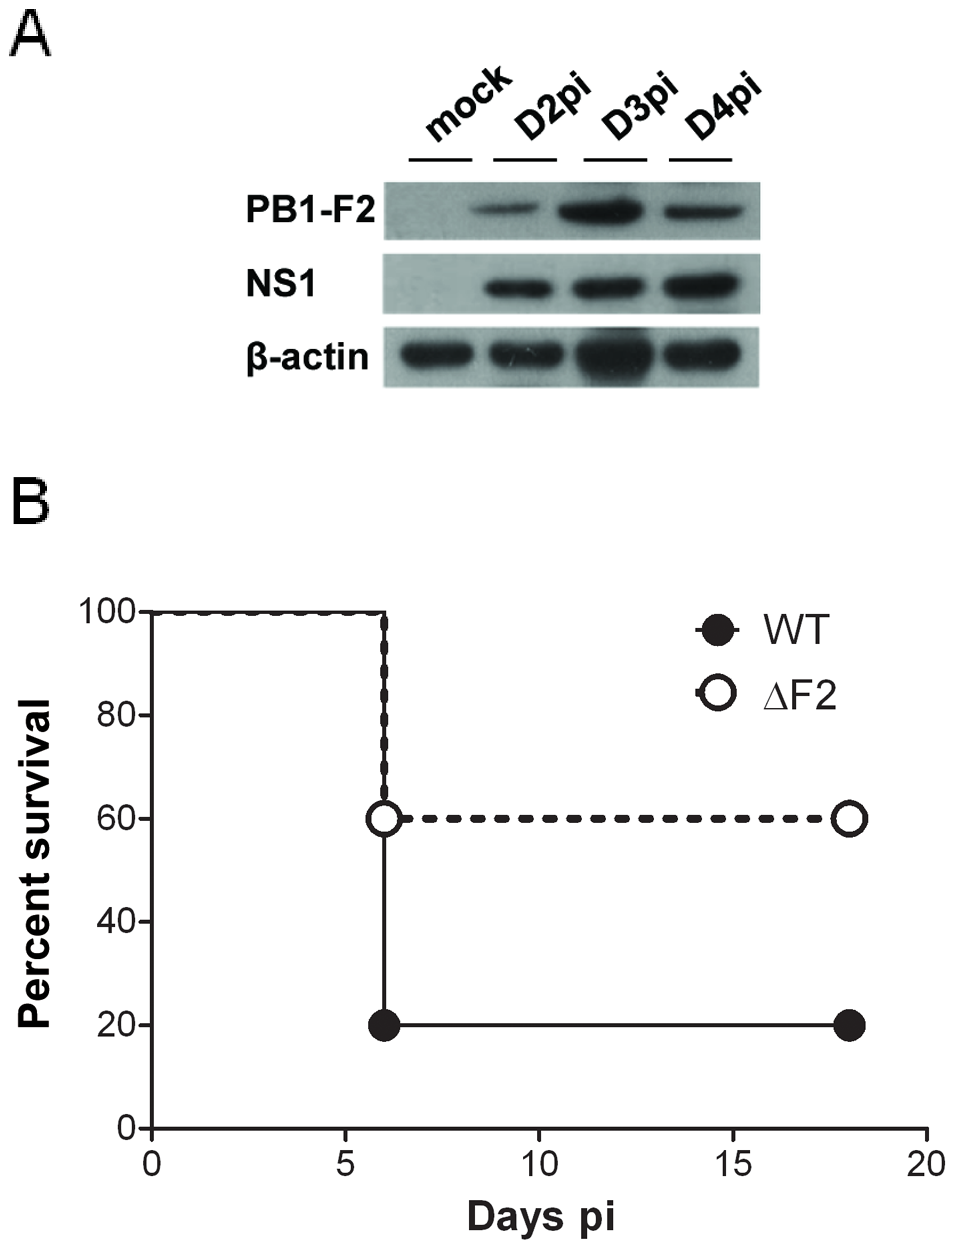 Expression of PB1-F2 and associated pathogenicity in infected mice.